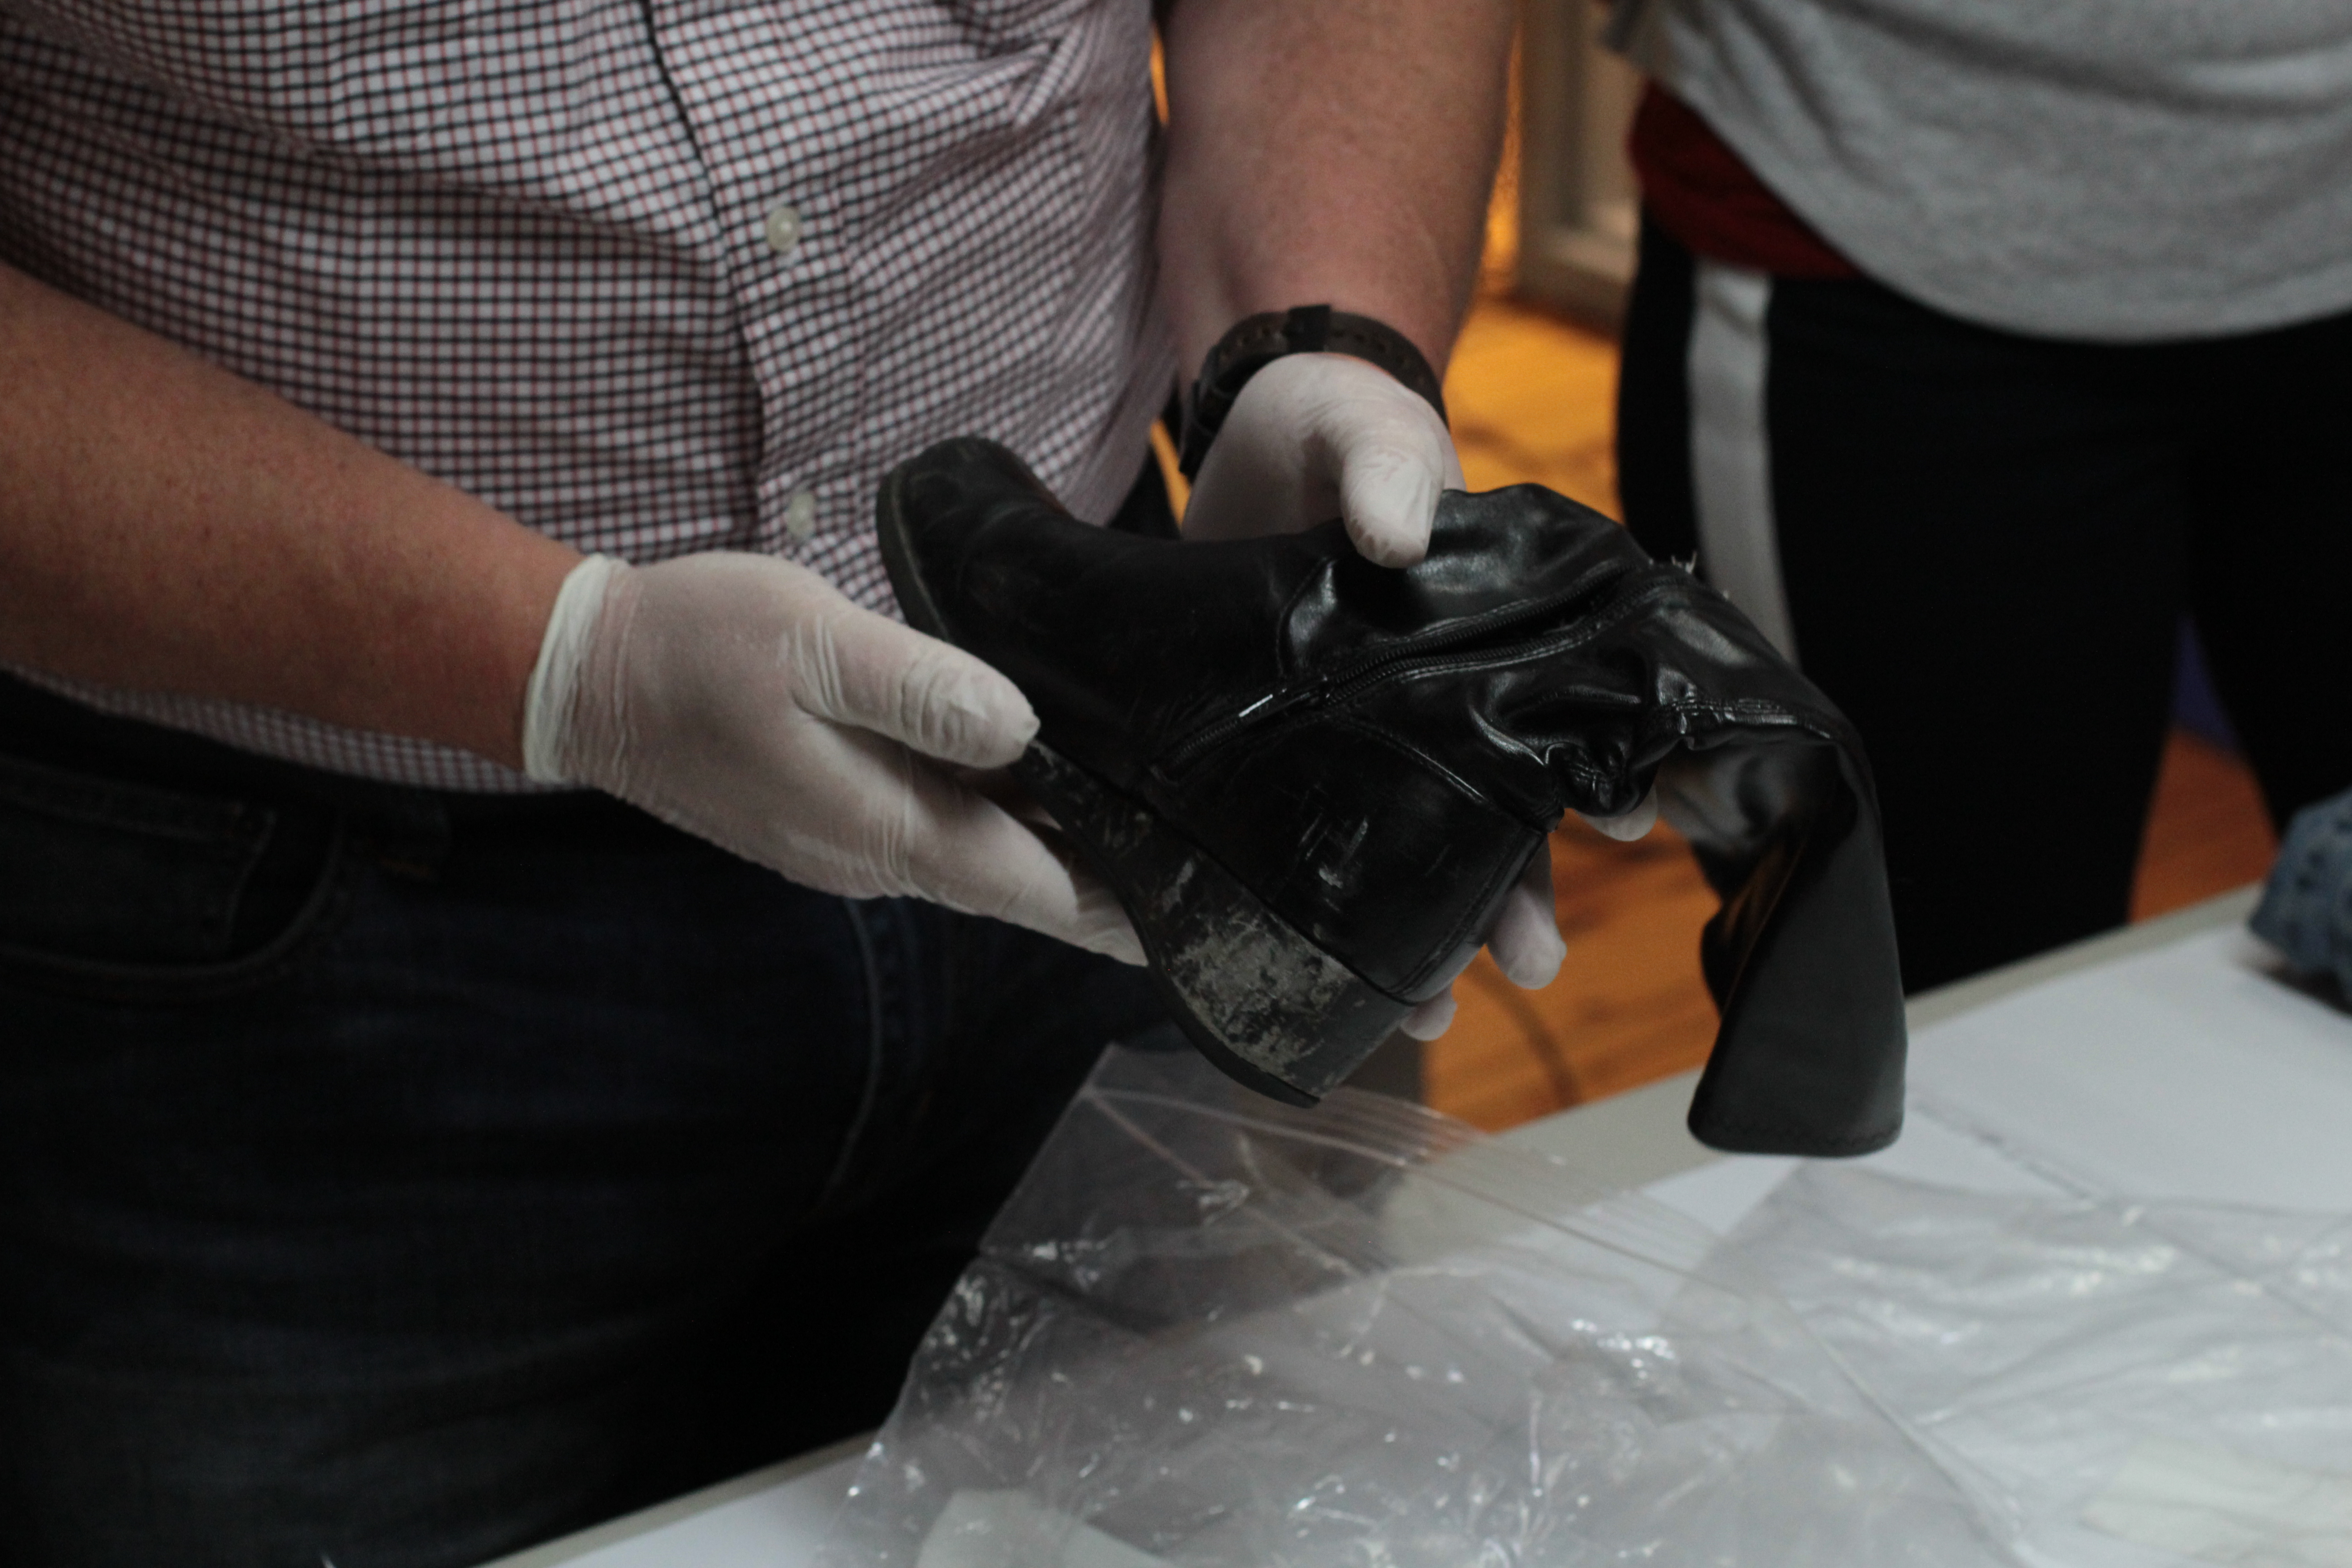 A black boot is held by two hands wearing clear rubber gloves. There is a smudge of mud on the boot's tread.